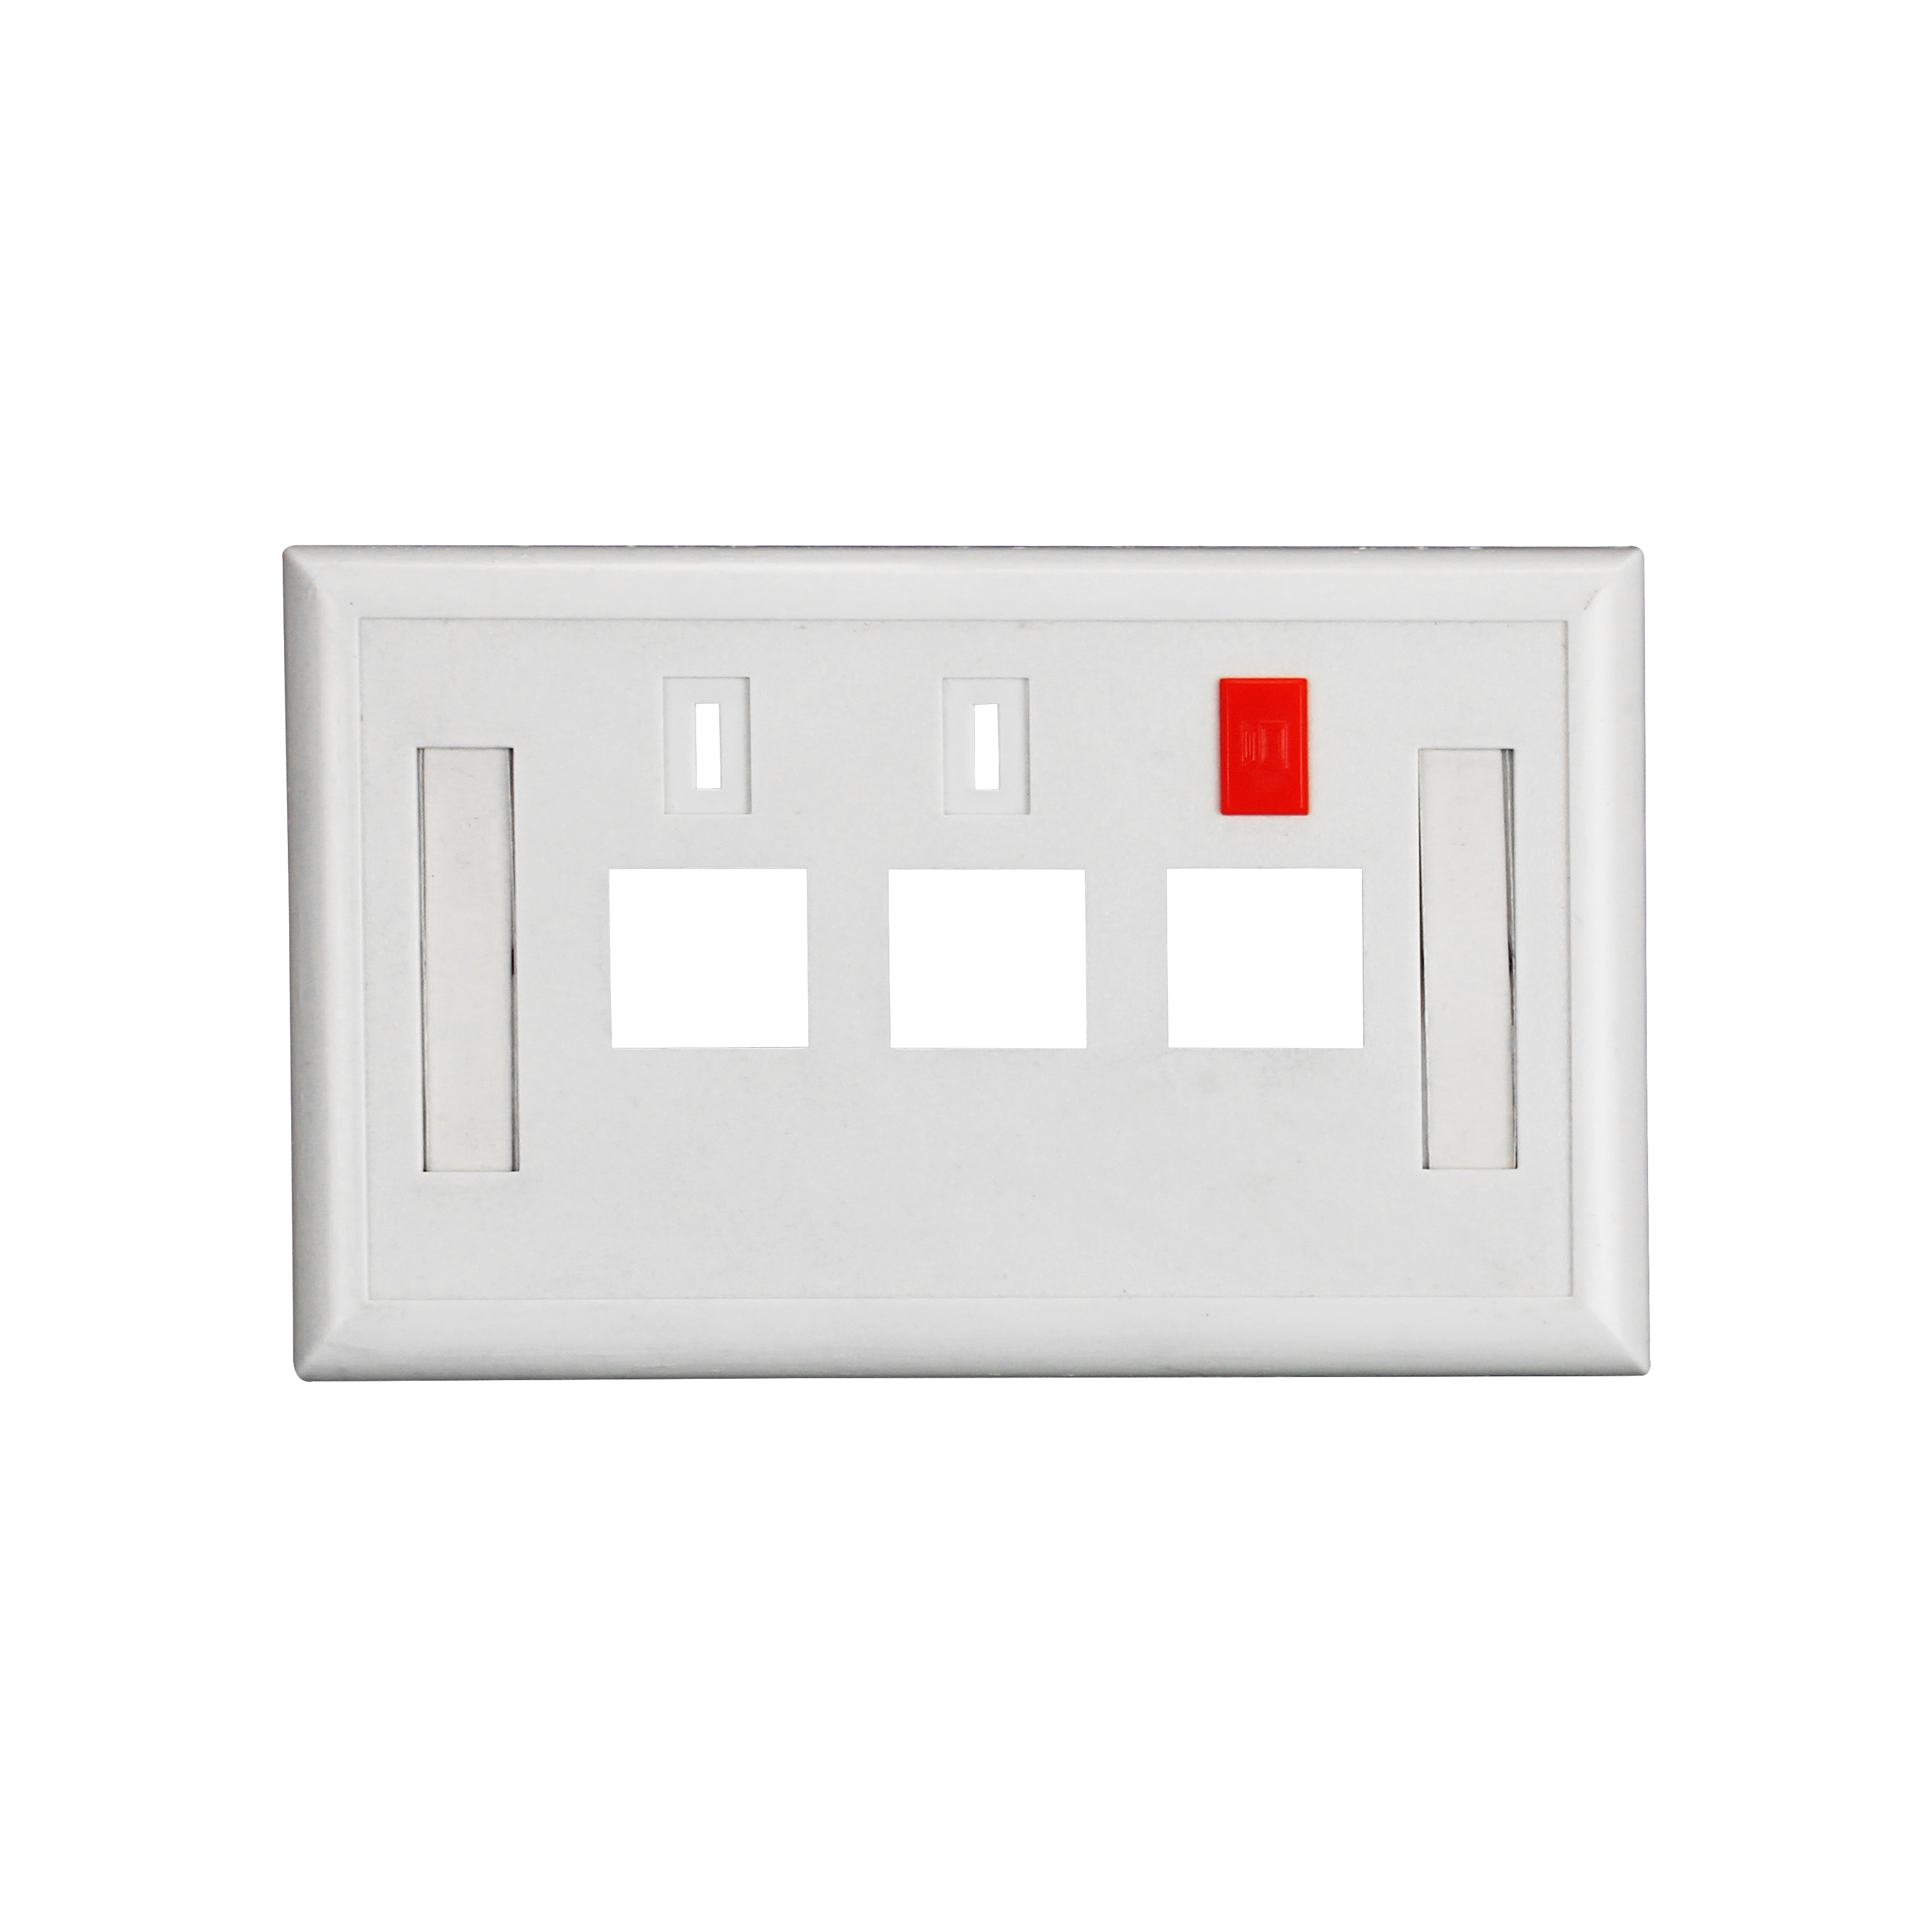 120 Type ( American Type) Faceplate 3 Ports ABS UL94V-0